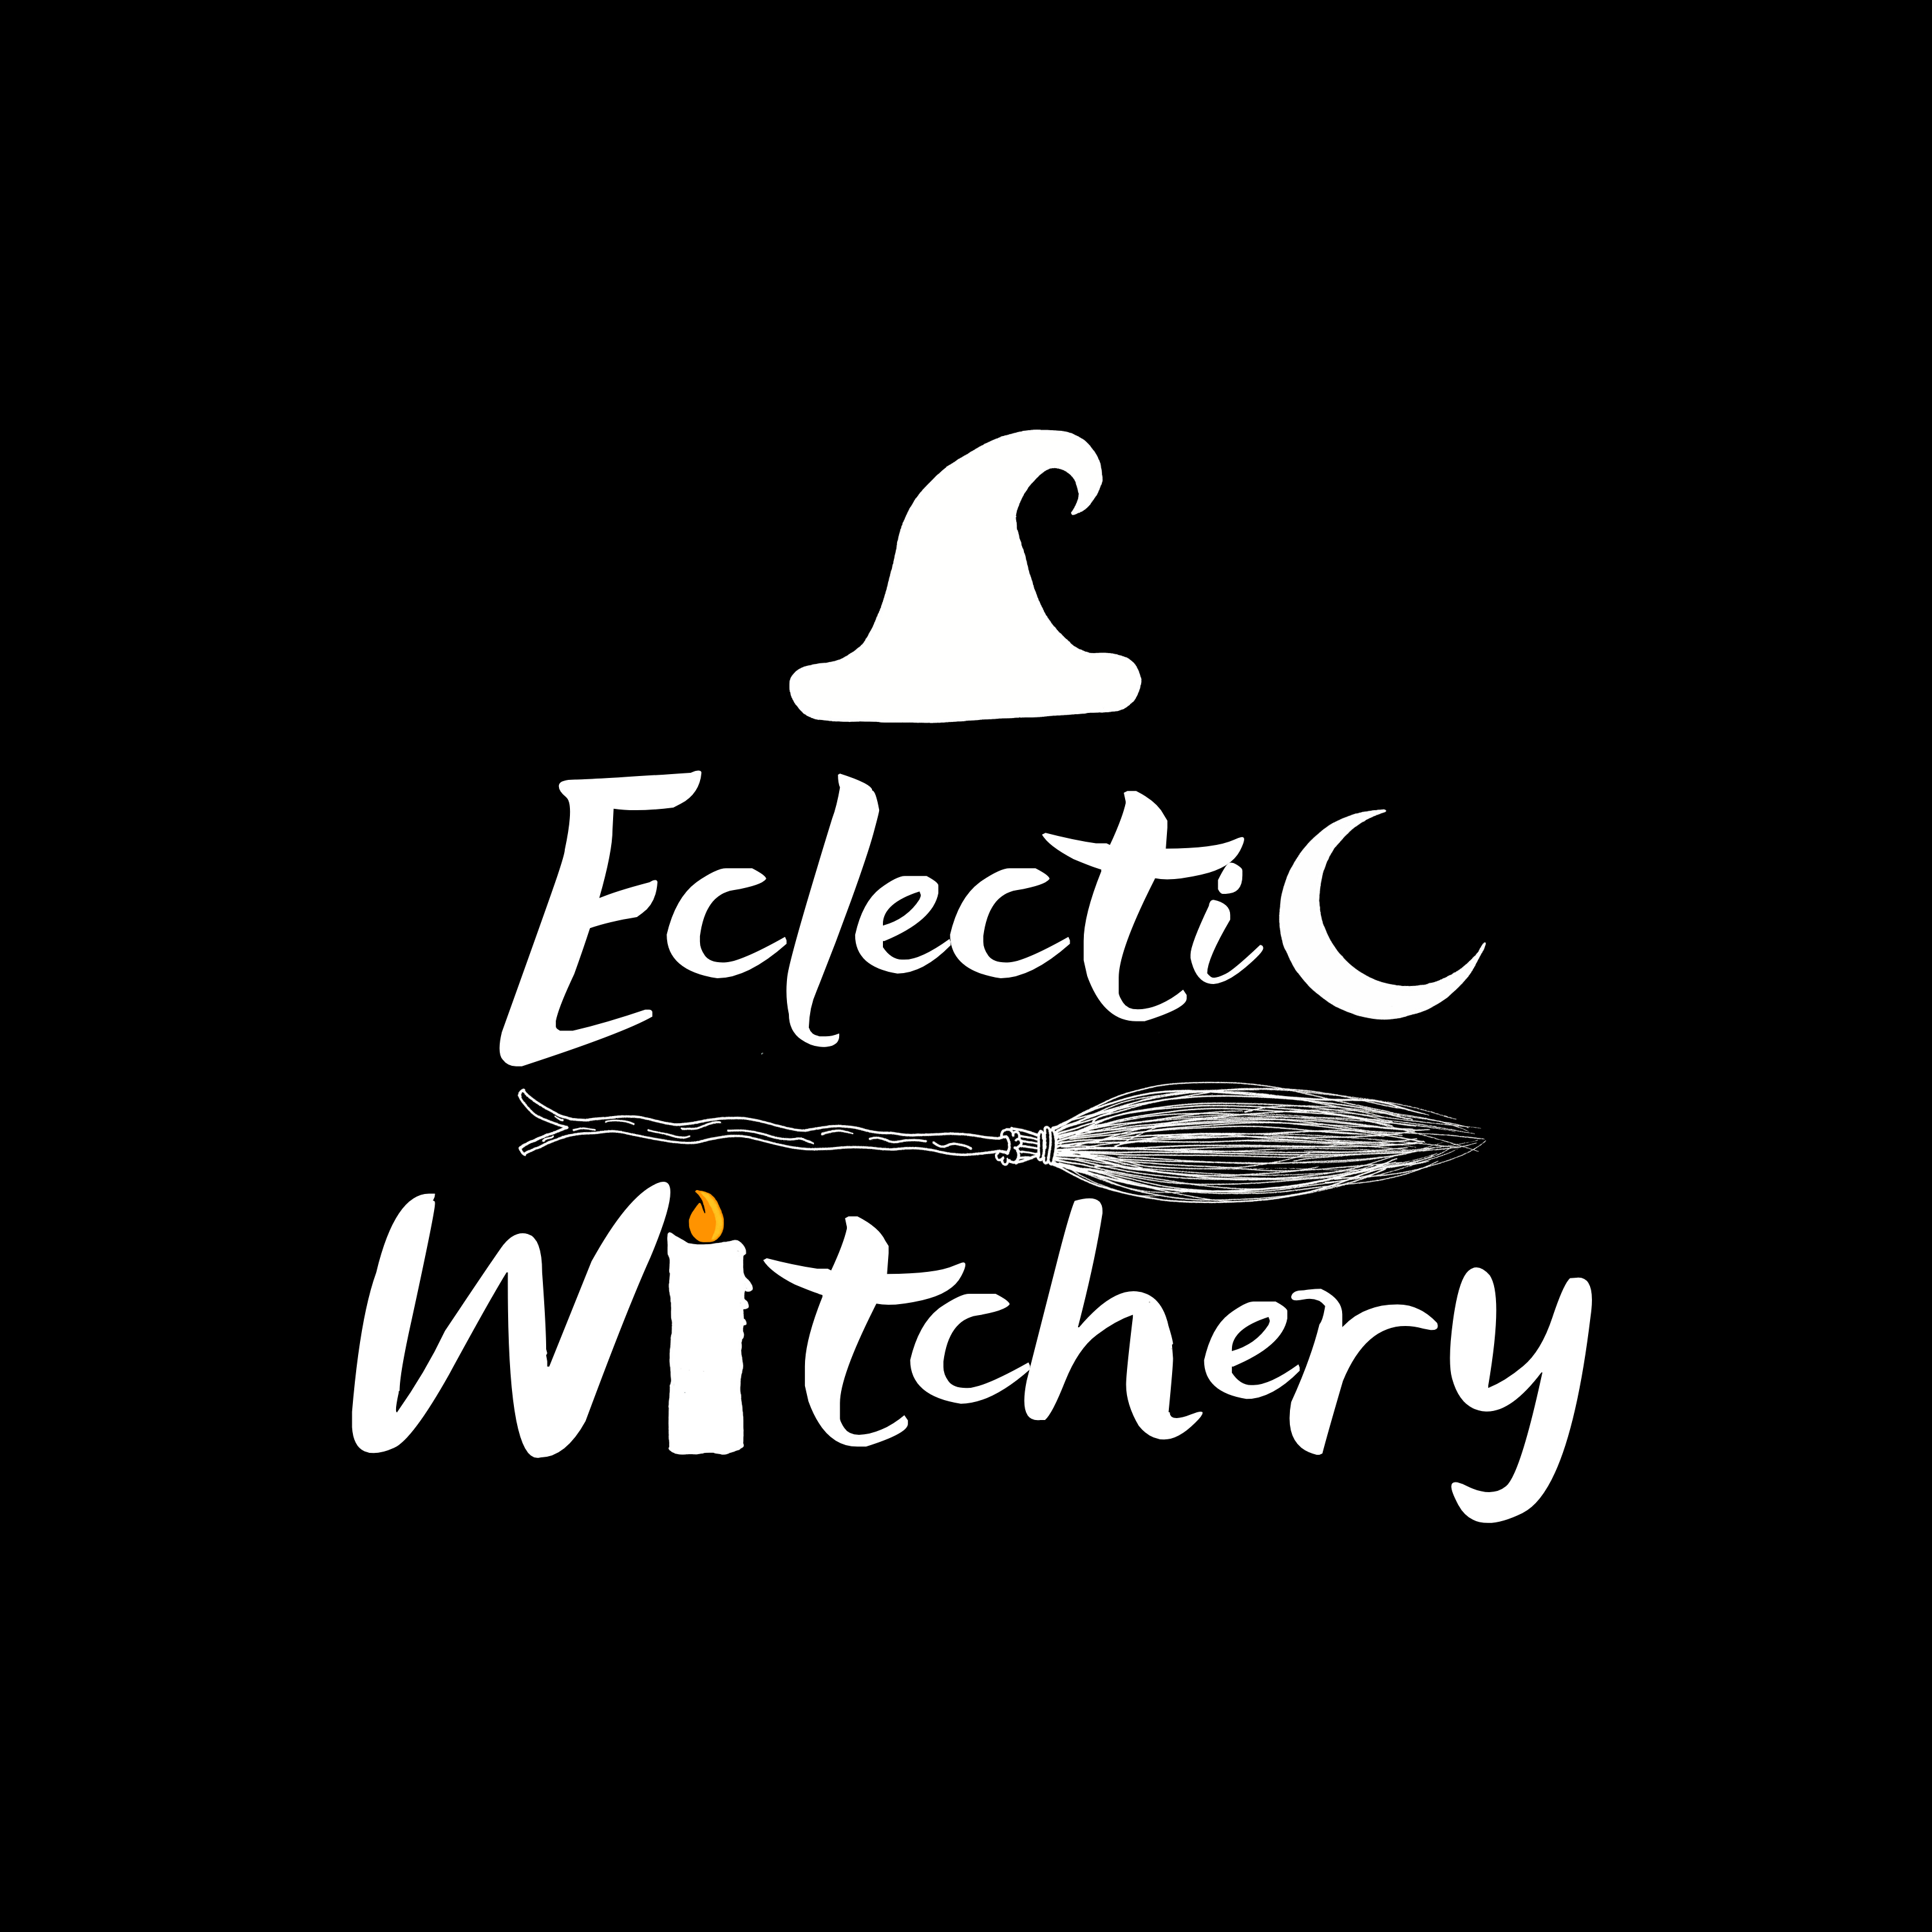 @eclecticwitcherypodcast Profile Image   Linktree